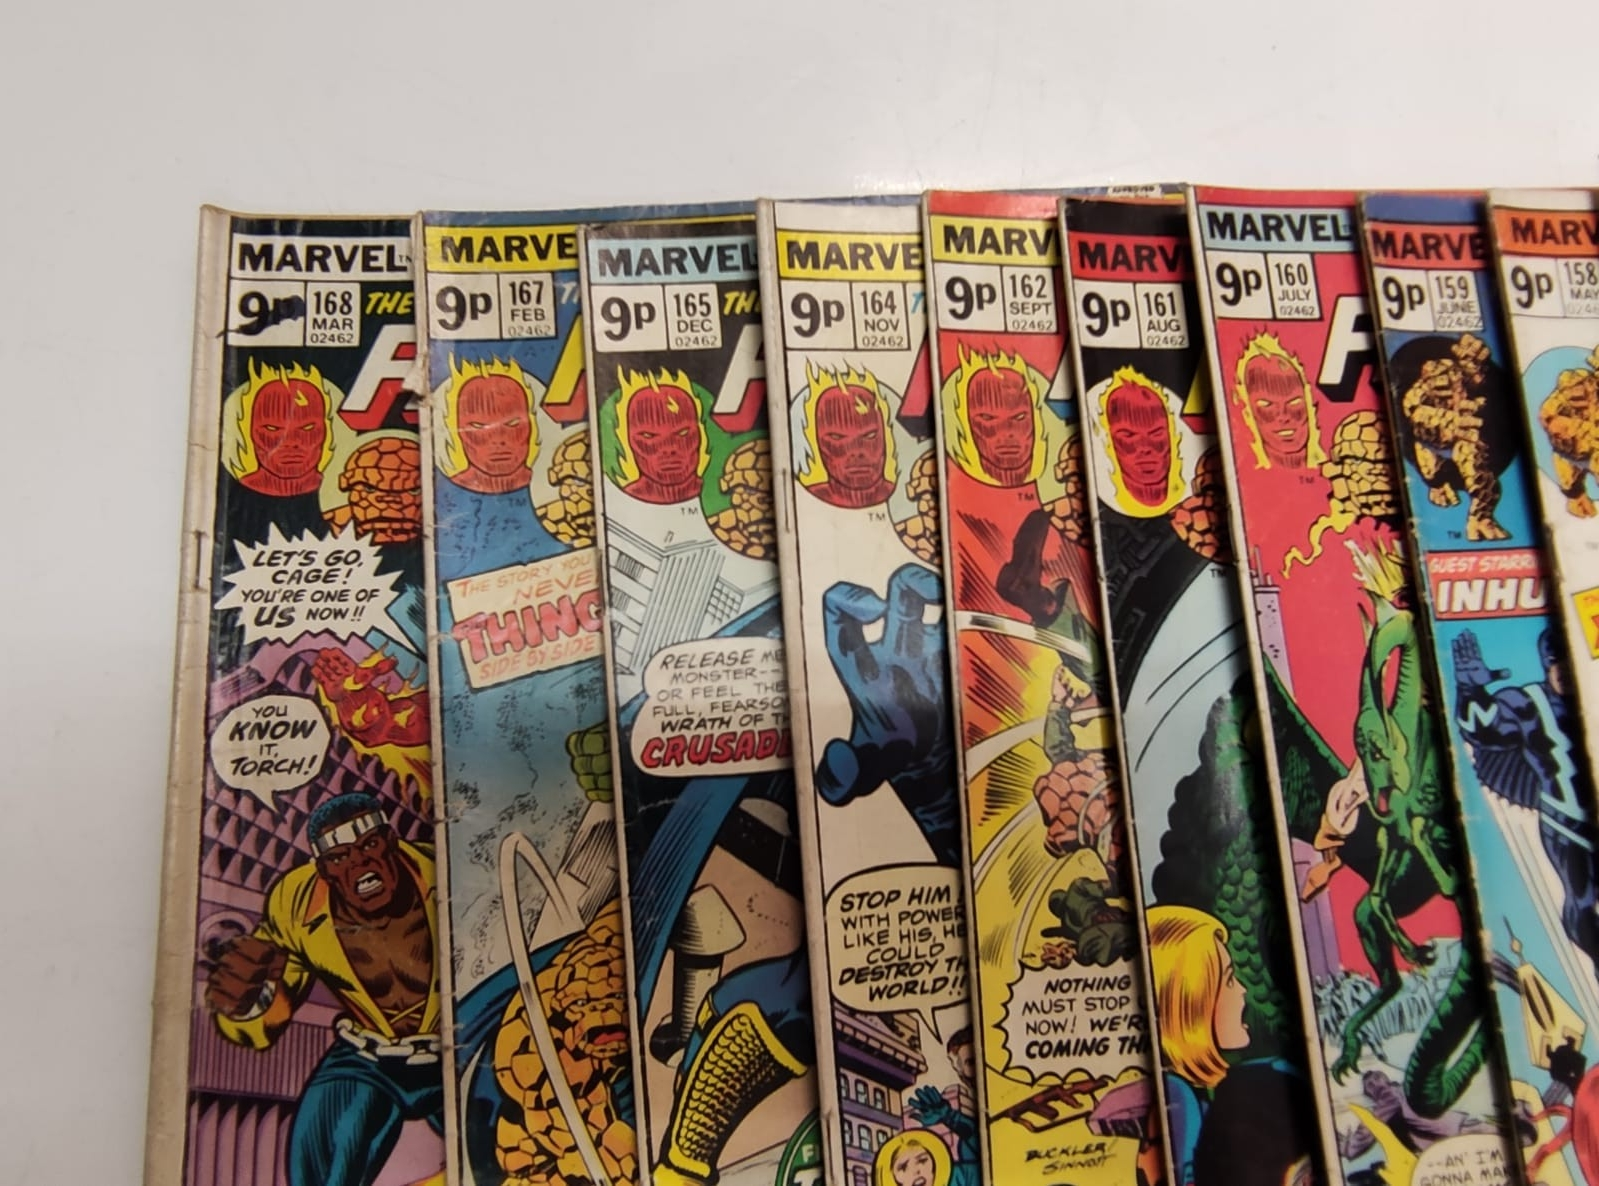 30x Marvel Fantastic four mid 1970s editions. Used, in good condition. - Image 4 of 17